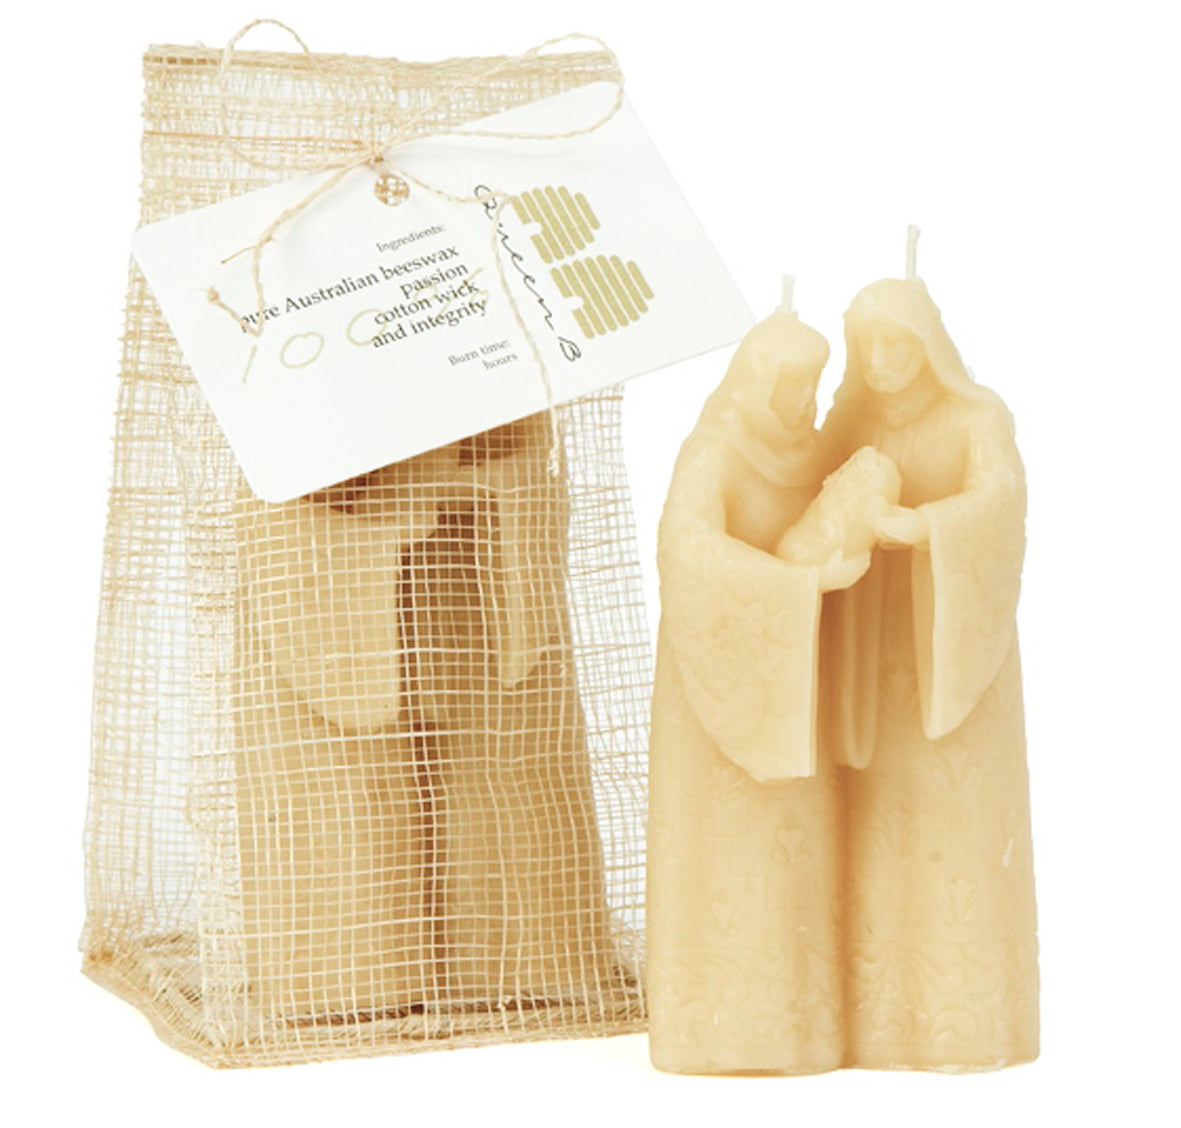 Mary Joseph & Baby Jesus packaging